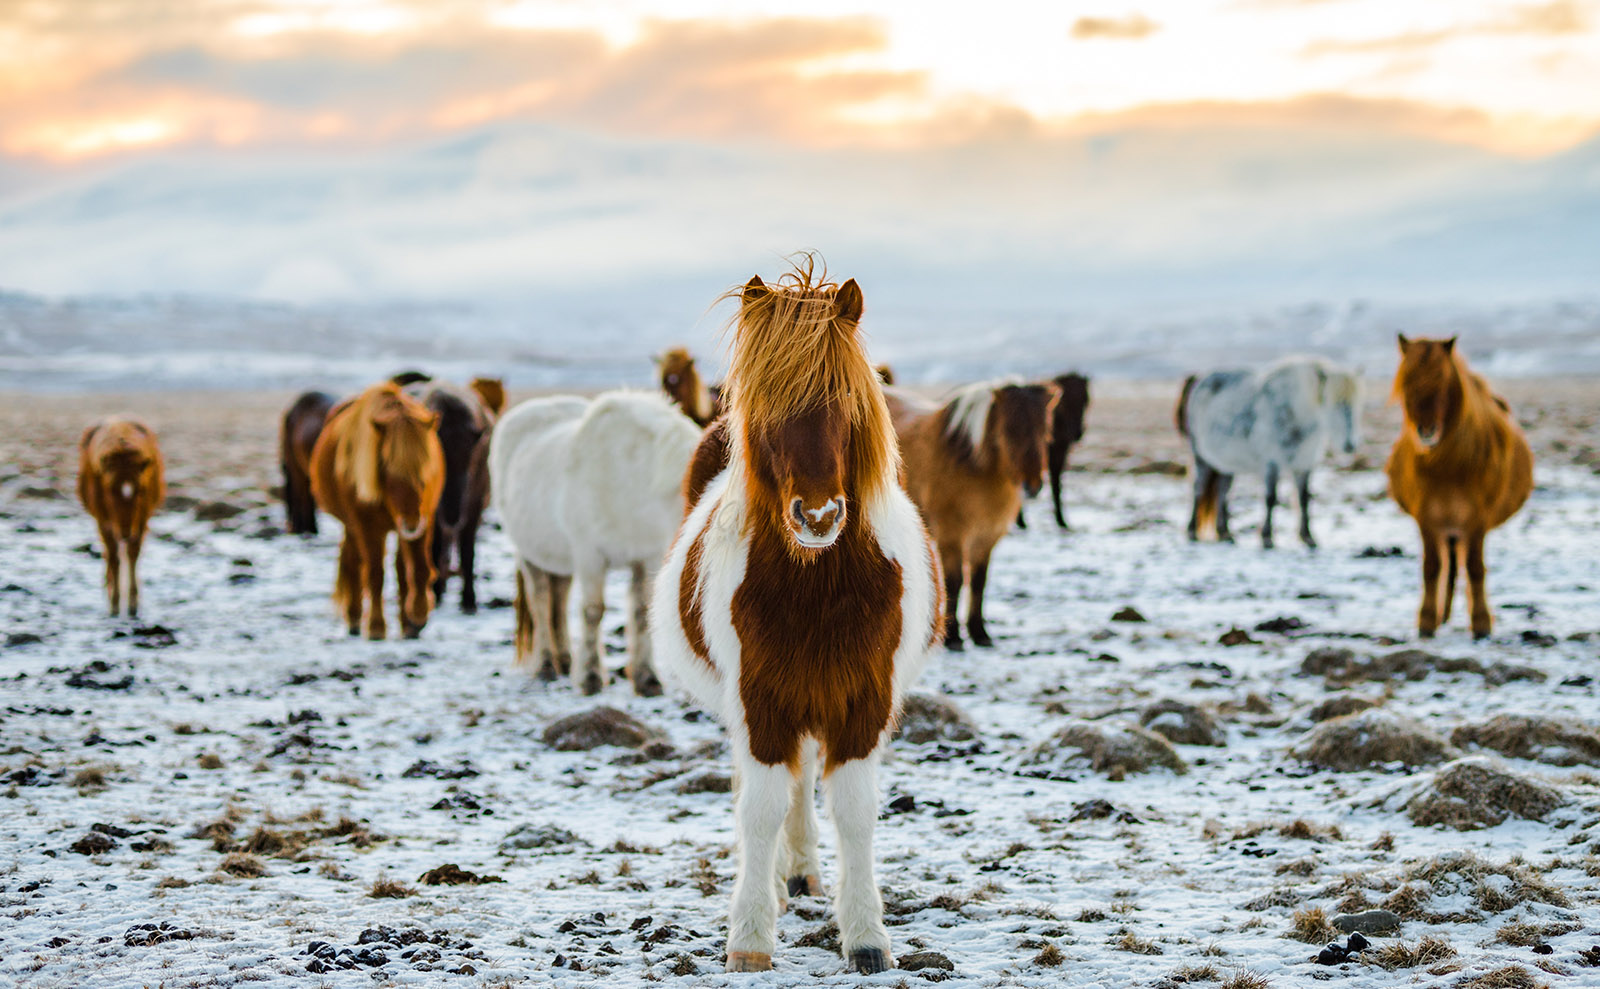 Icelandic Horses, Best Food Books, Literary London, New Scrooge & More: Endnotes 04 December